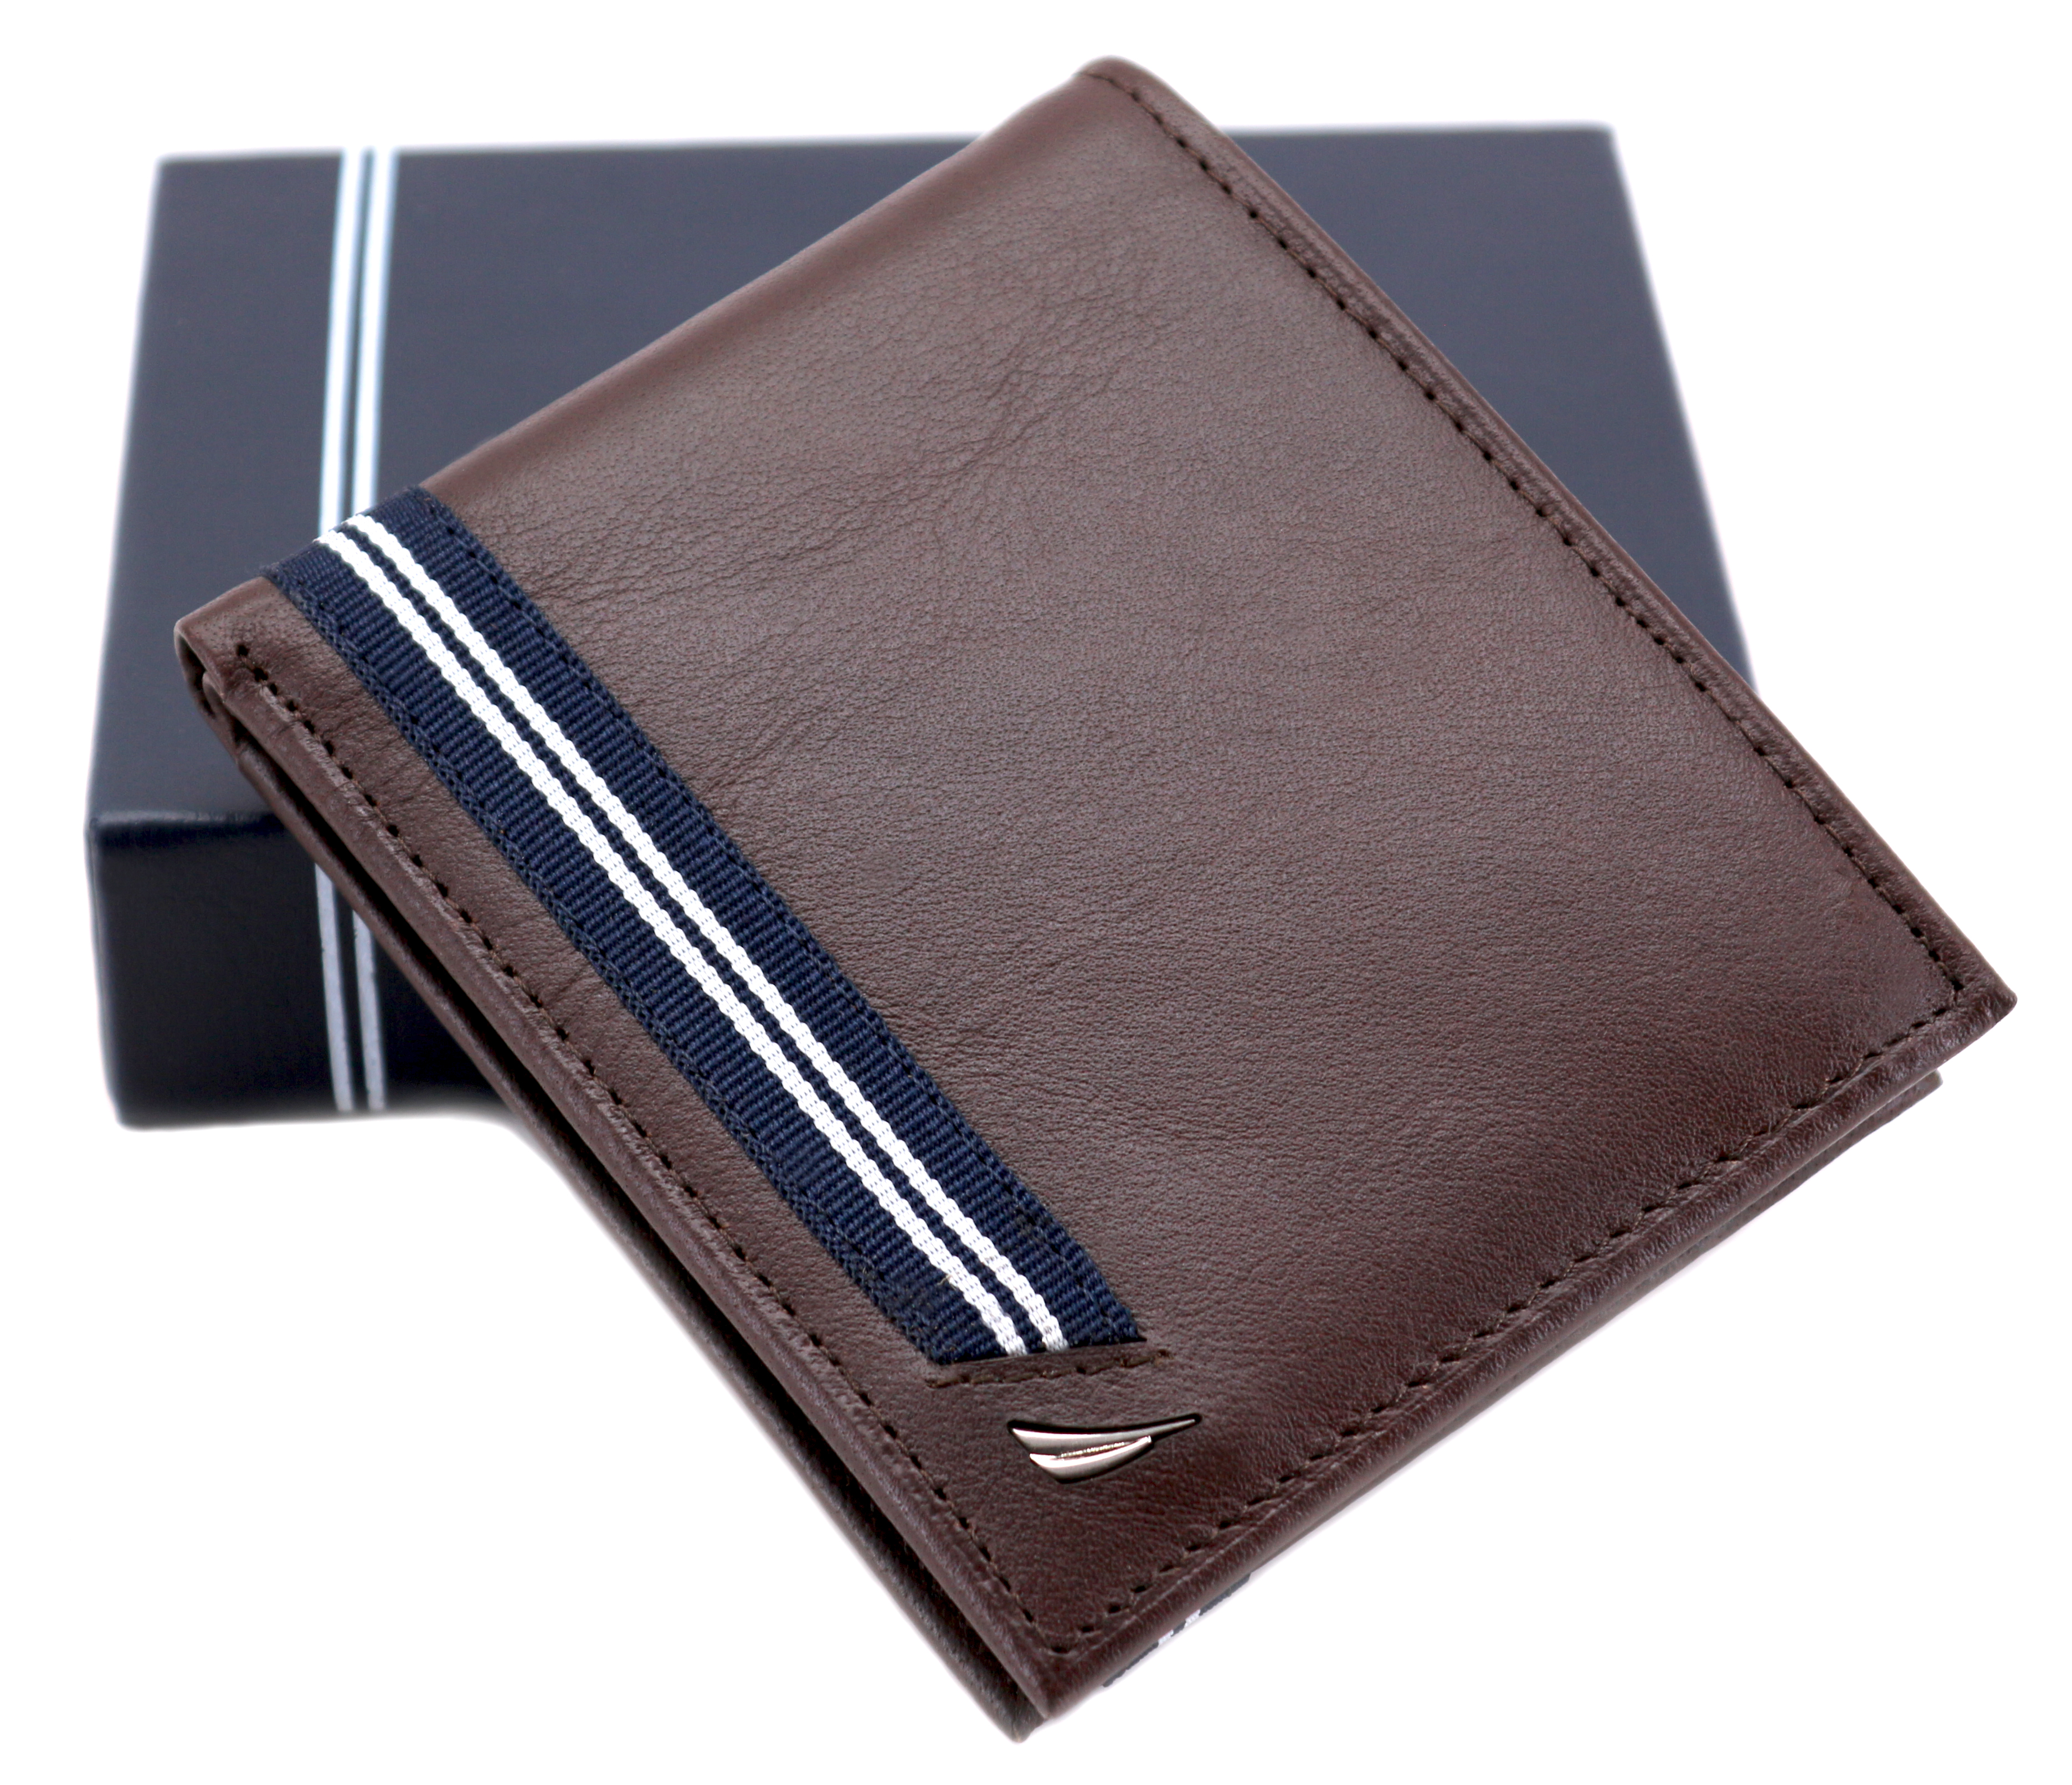 Nautica-Men-039-s-Genuine-Leather-Credit-Card-ID-Double-Billfold-Passcase-Wallet thumbnail 19